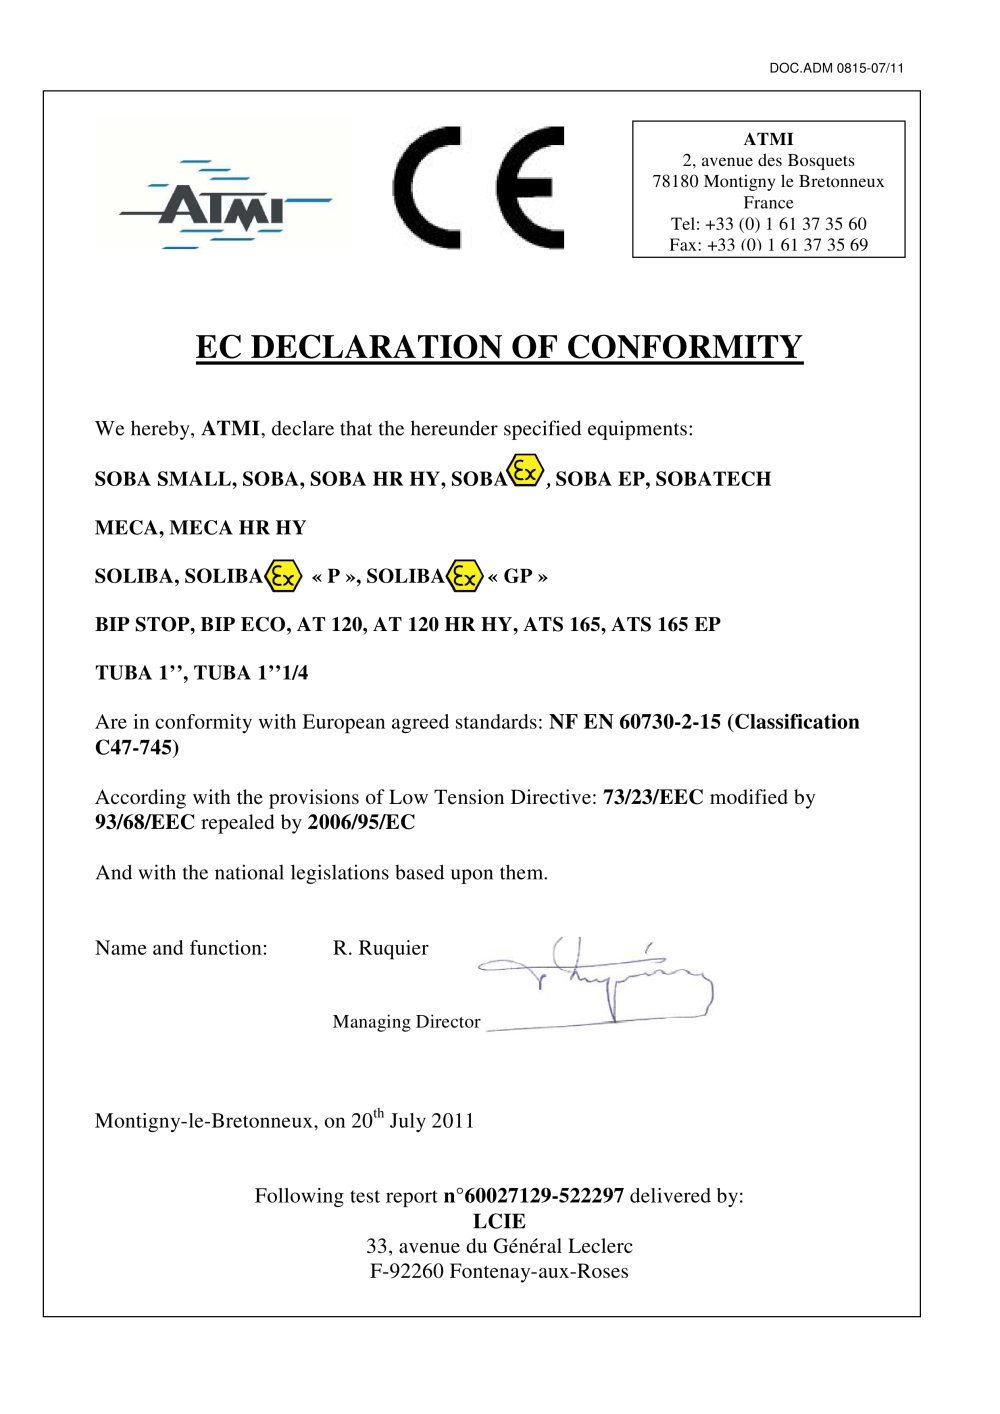 Certificate according the directive 200695ec lease agreement doc ce declaration of conformity atmi pdf catalogue technical ce declaration conformity 612290 1b 52928 612290html certificate according the directive 200695ec yelopaper Gallery